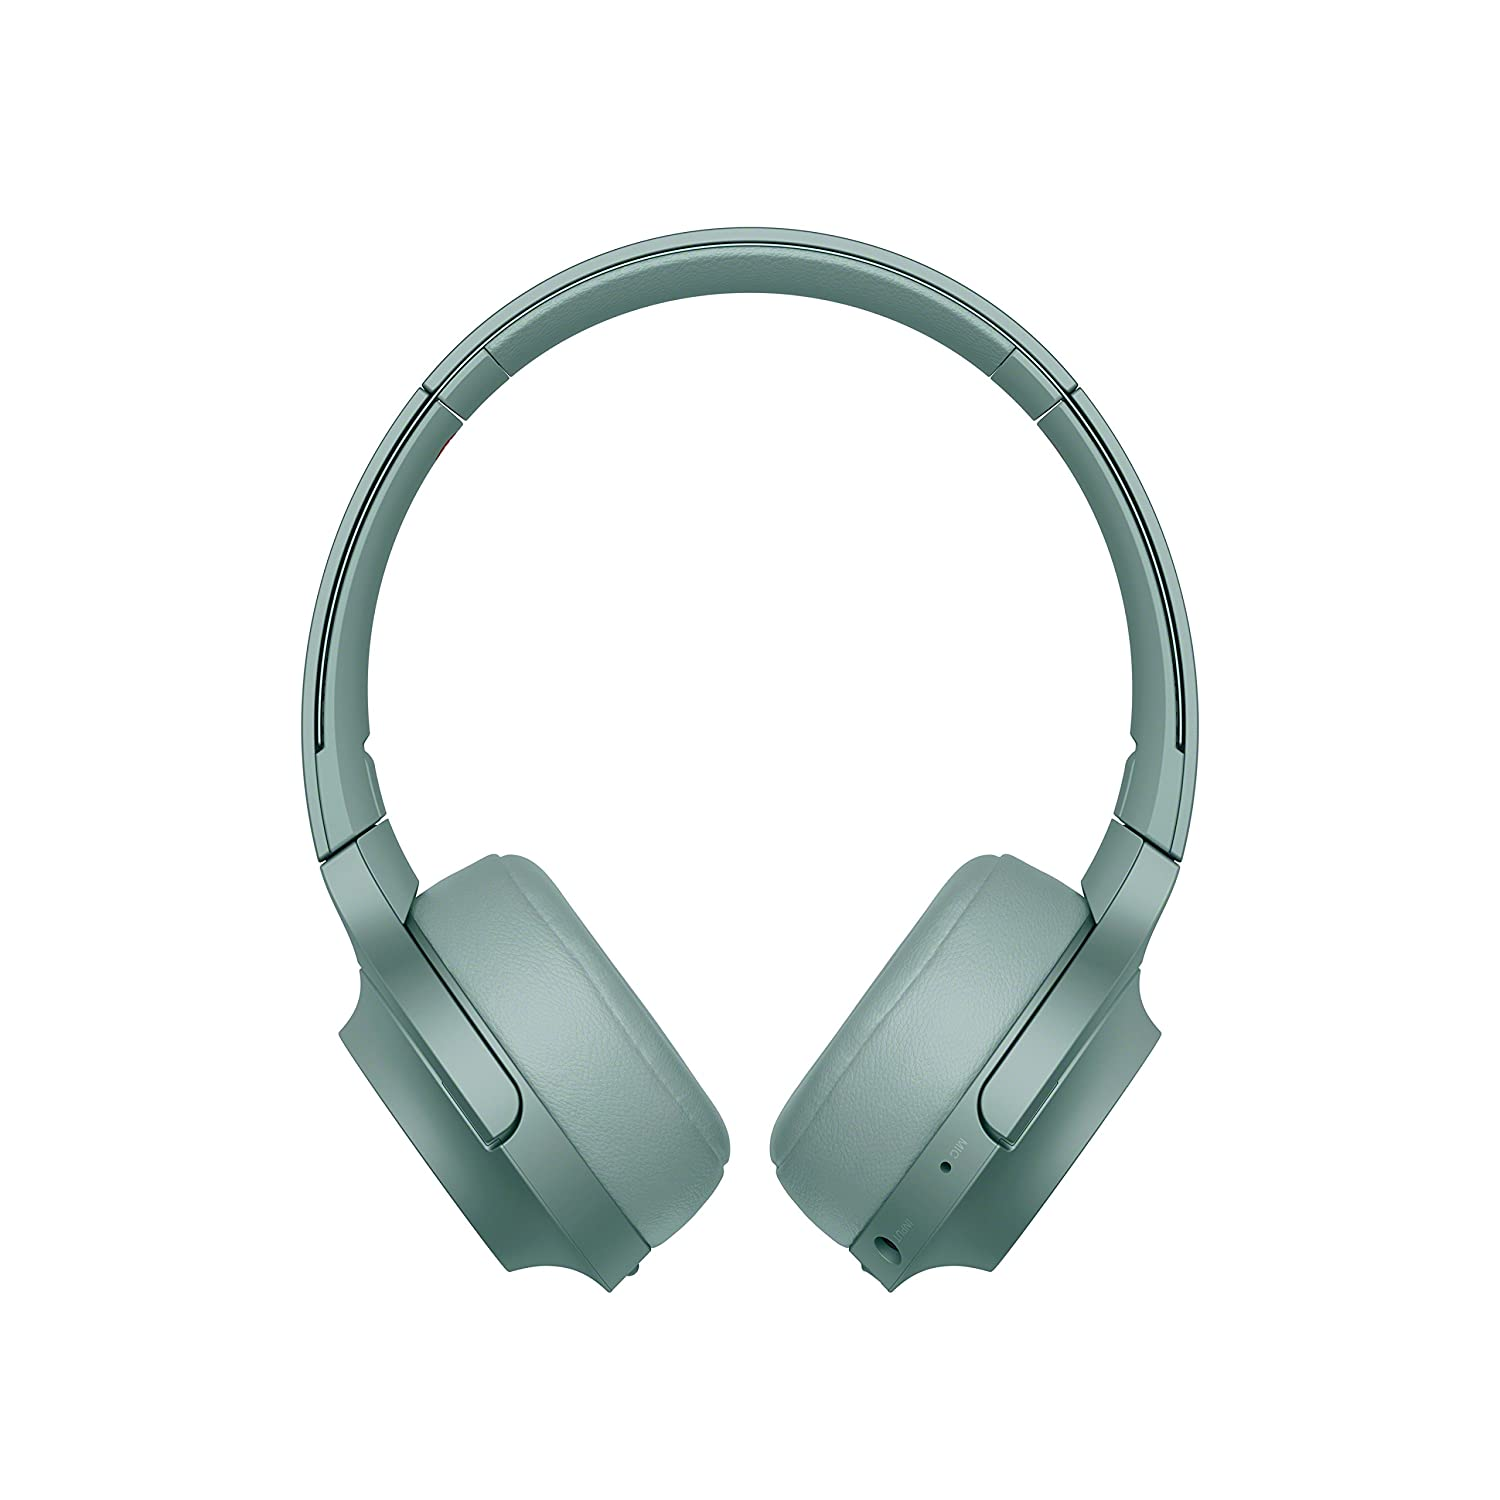 Sony WH-H800 h.ear Series Wireless On-Ear High  Amazon.co.uk  Electronics 011480f3b56f2